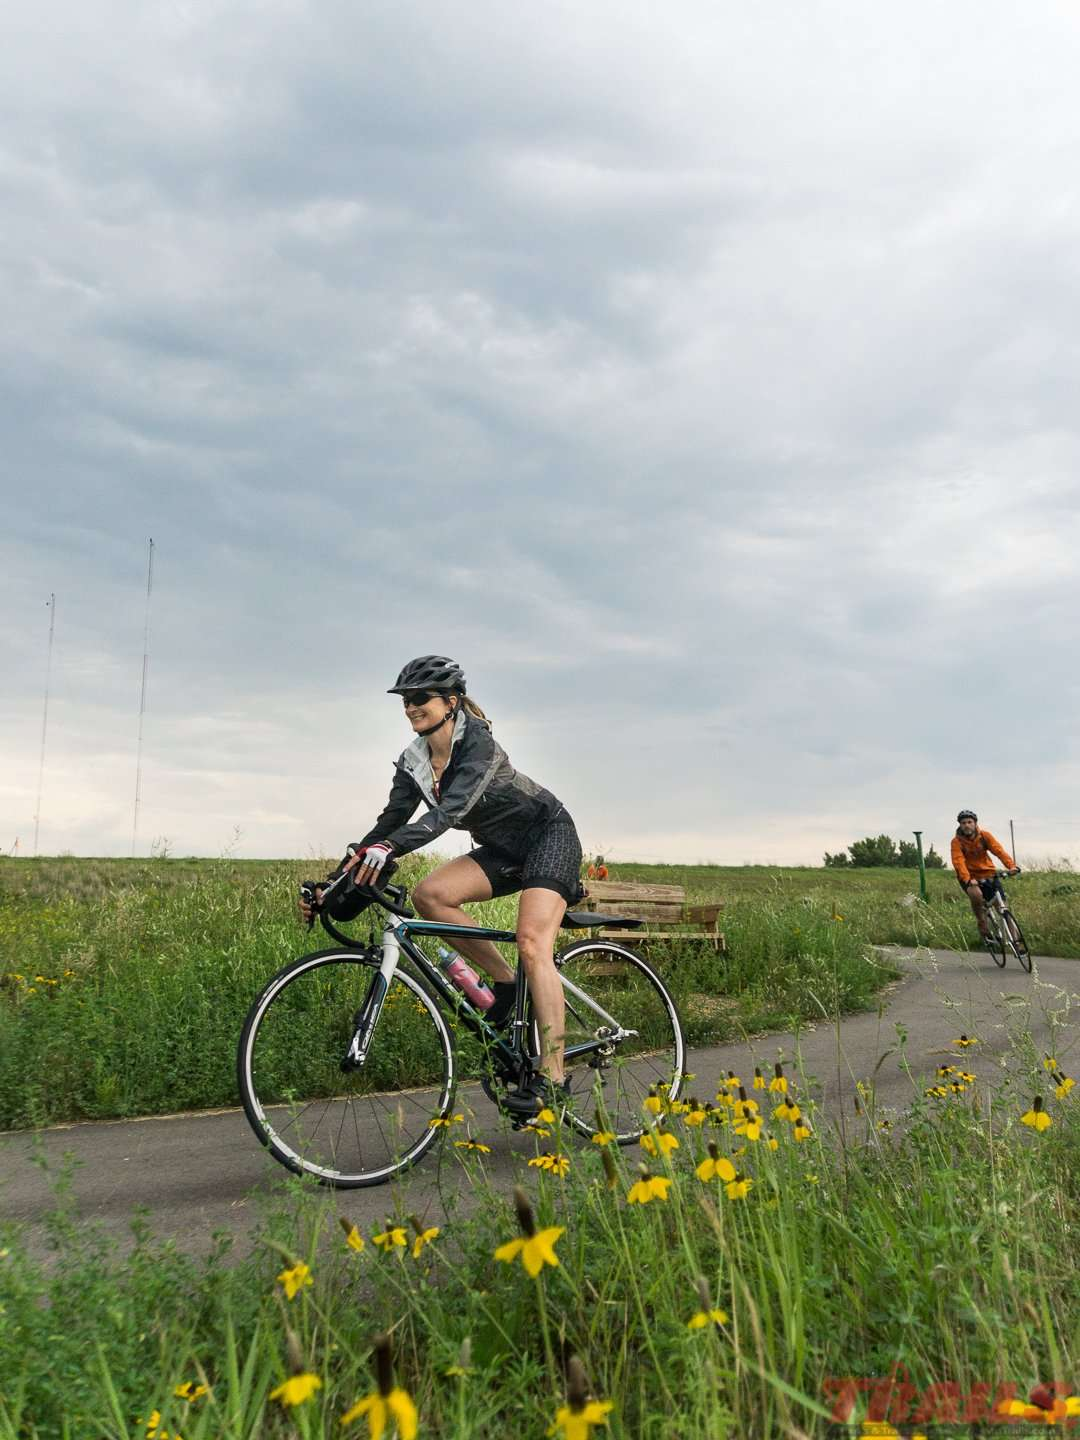 Start your trip from the Fergus Falls trailhead on the Central Lakes State Trail